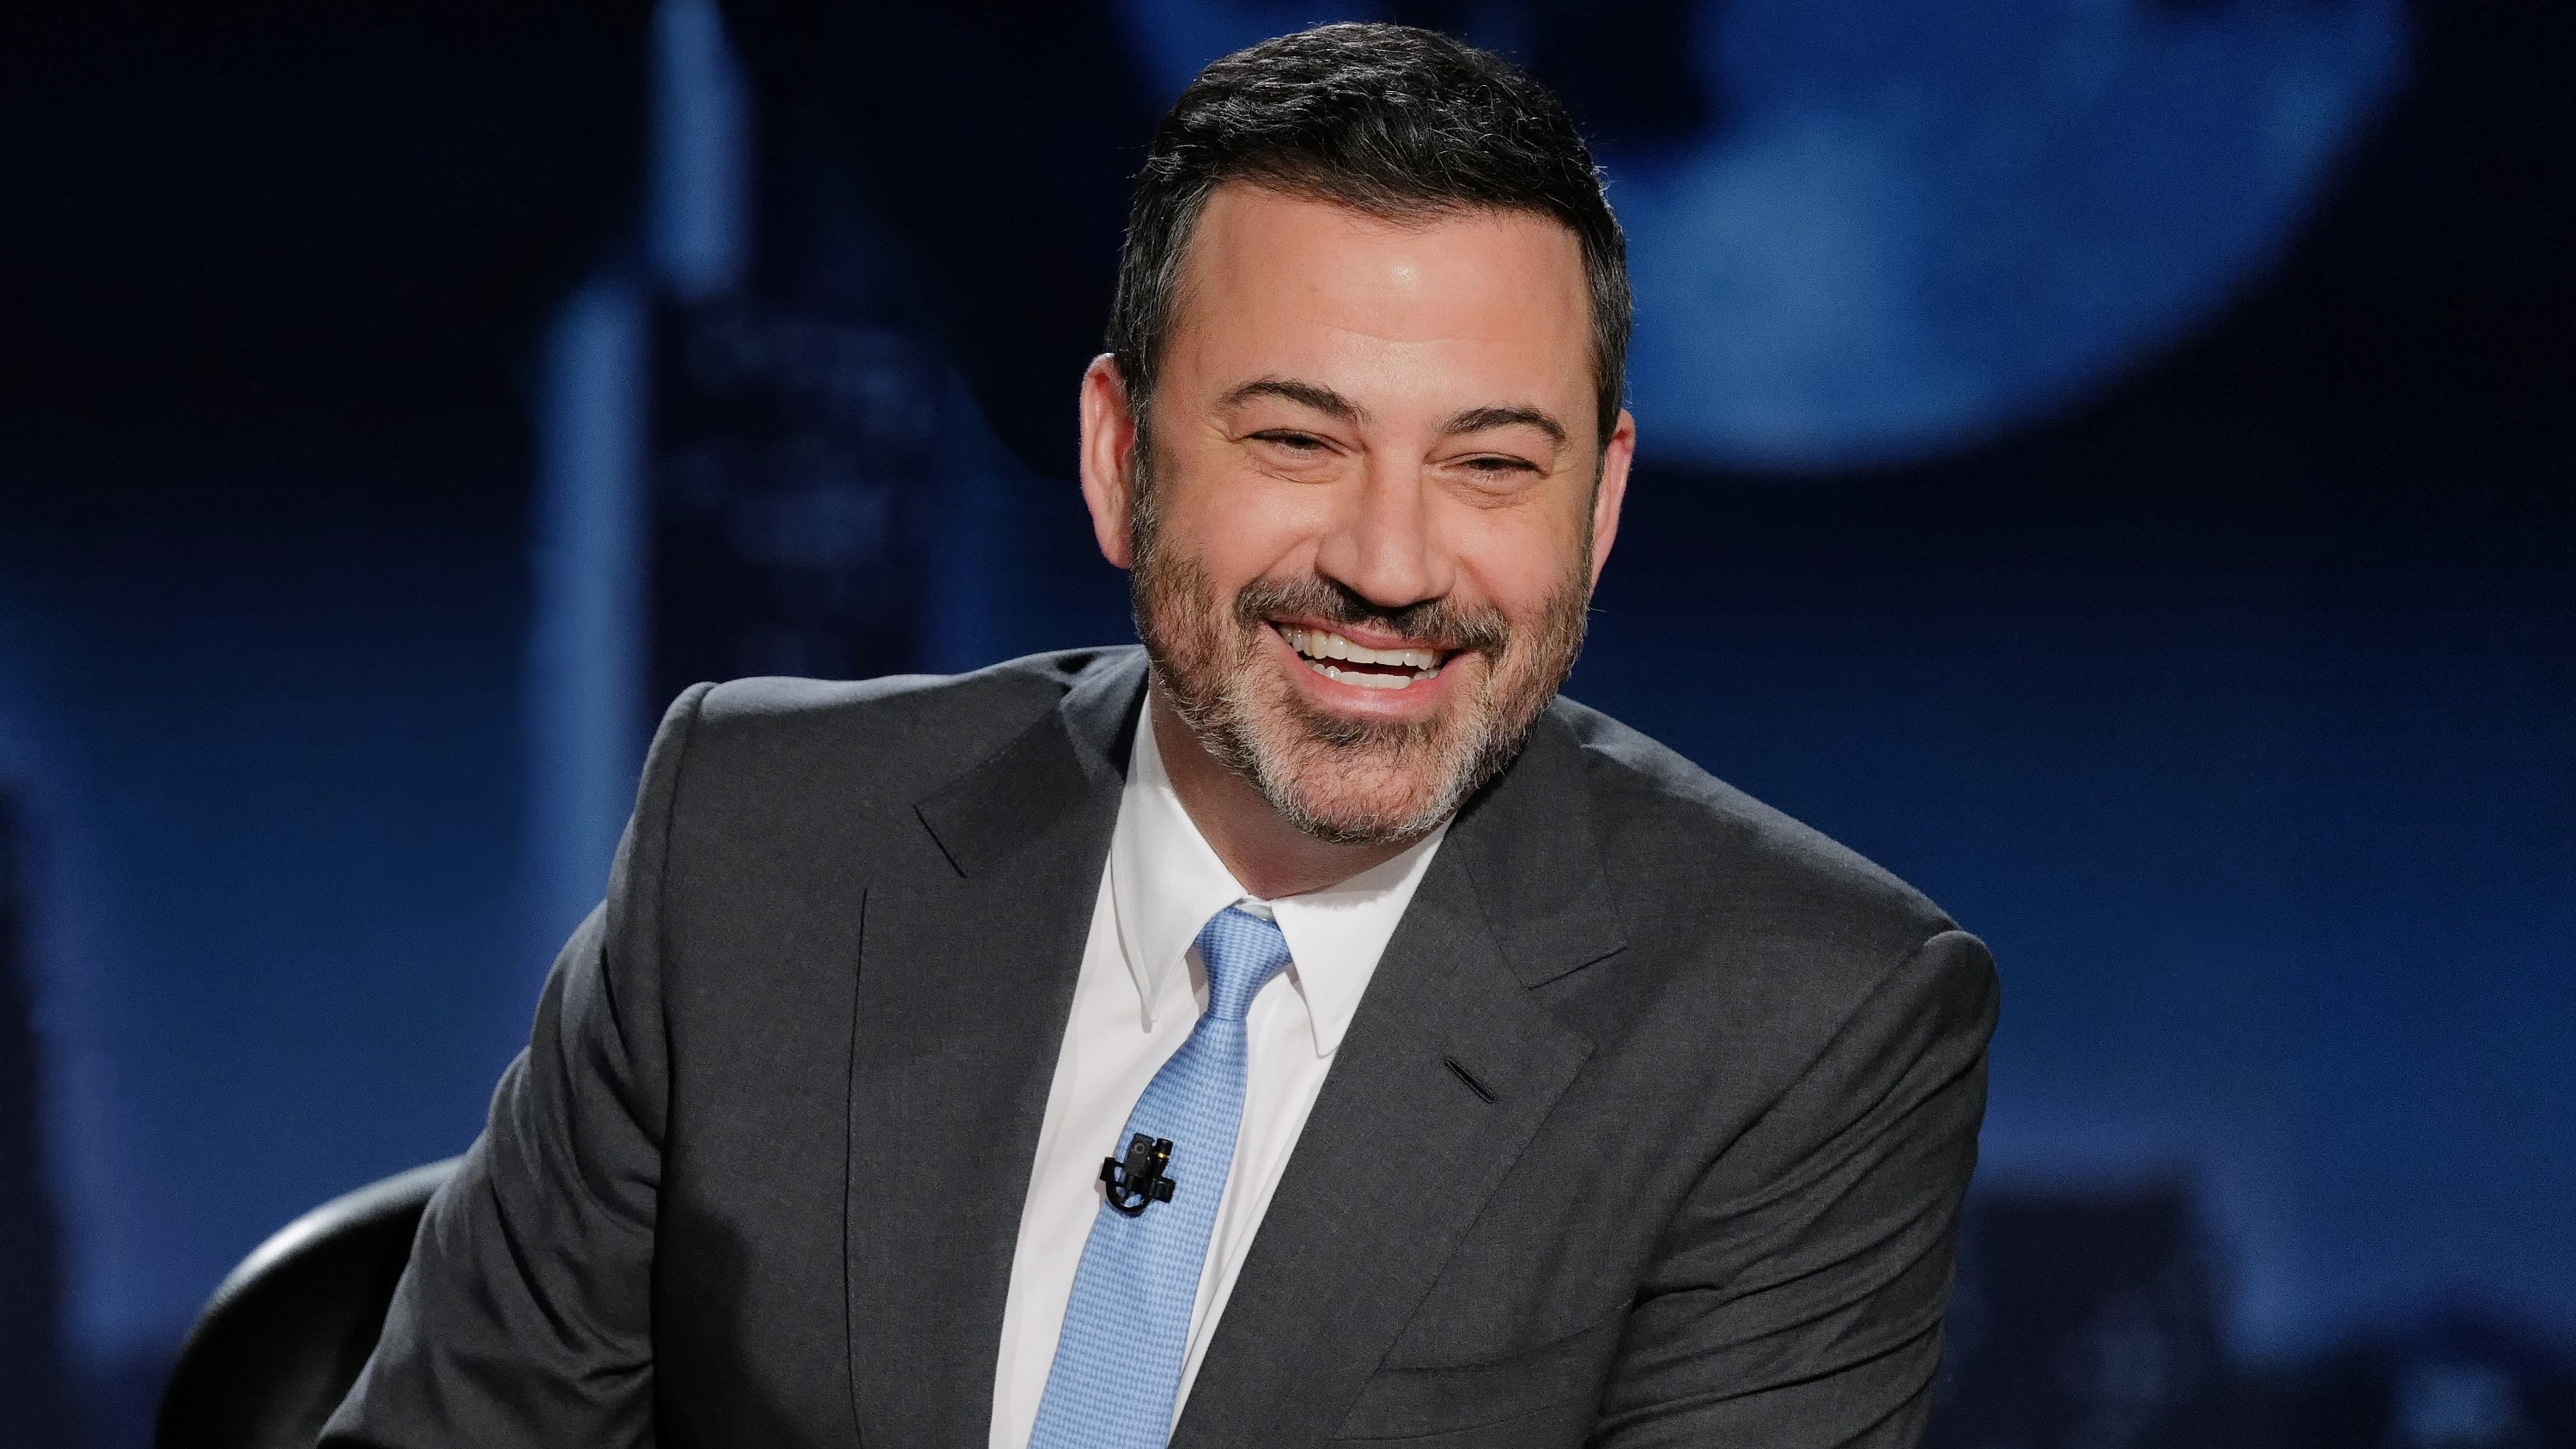 'Jimmy Kimmel Live' to Air Coronavirus Anniversary Special With Pete Buttigieg